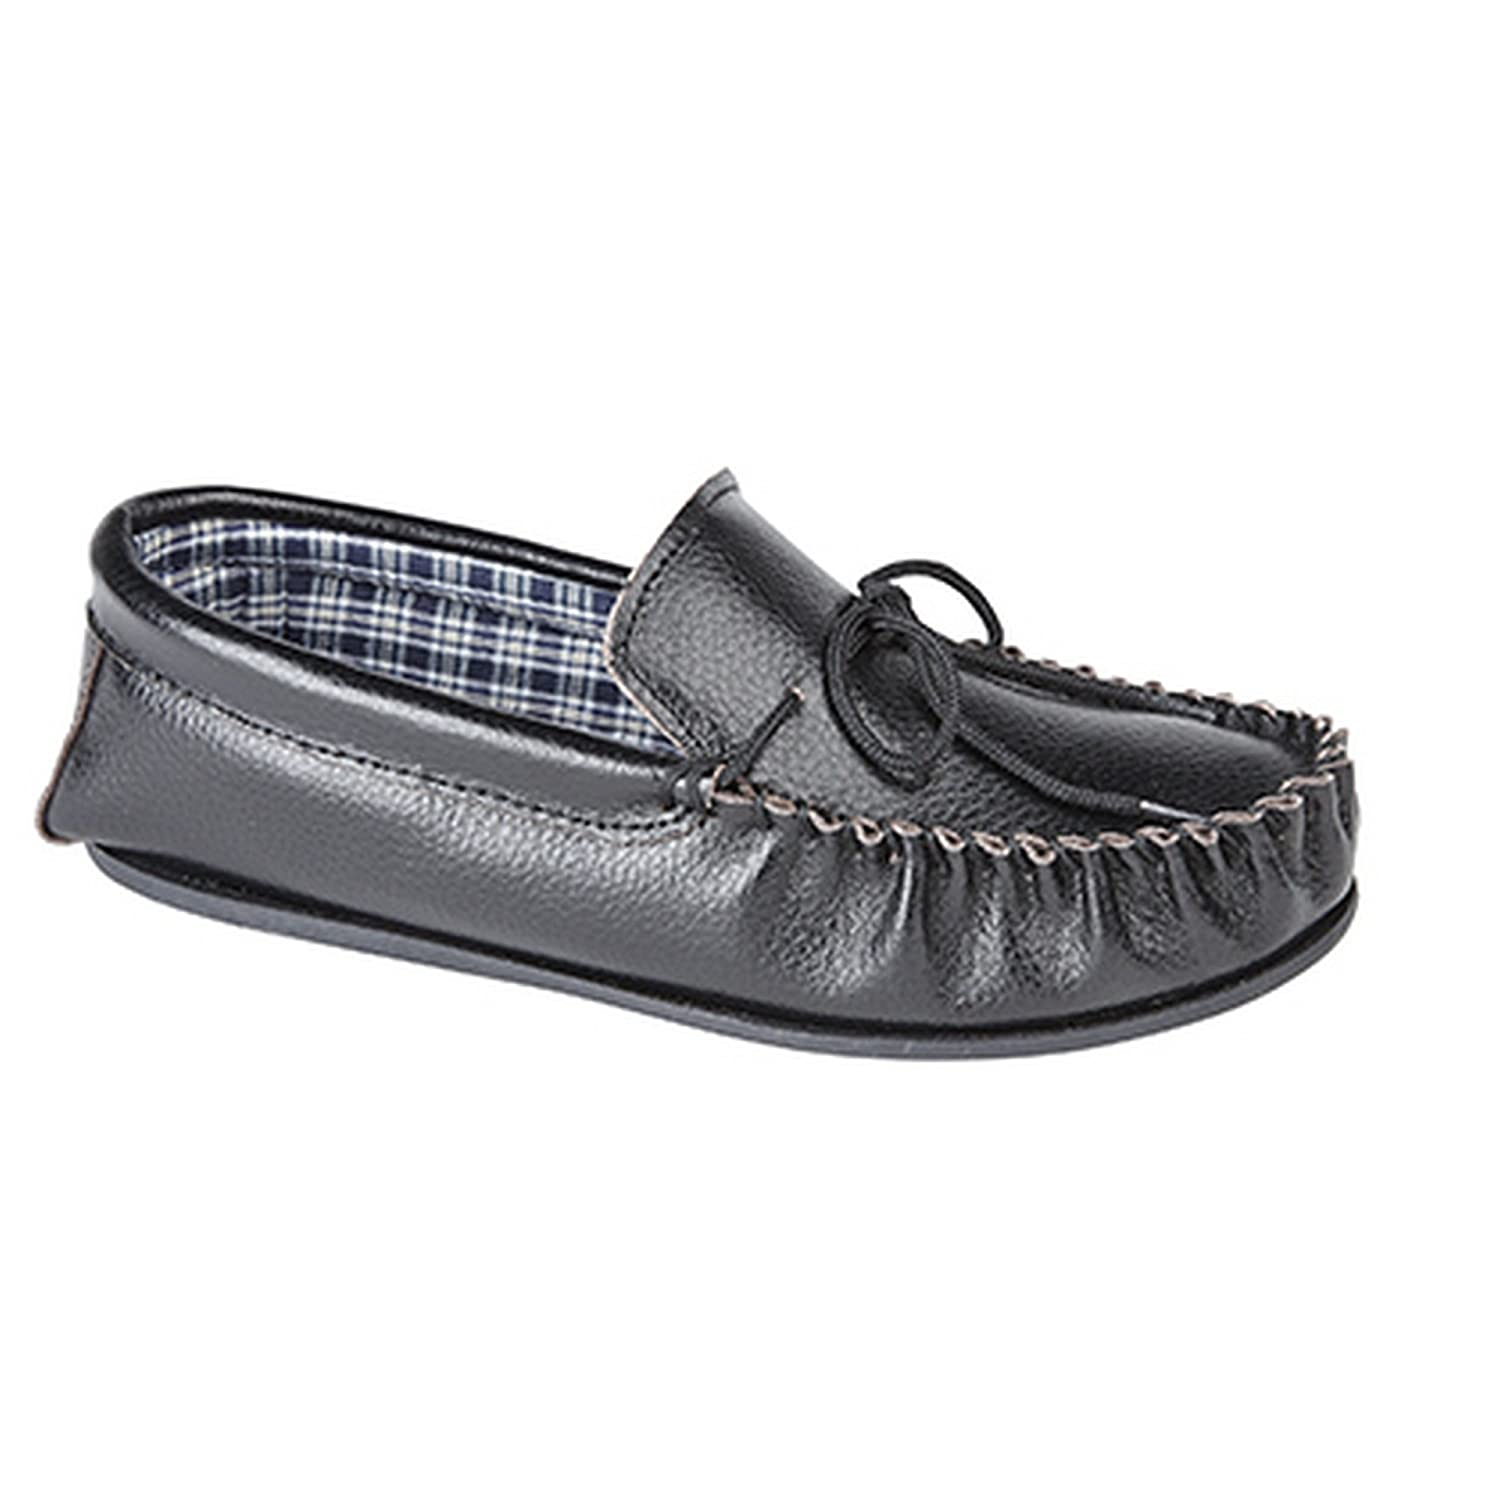 TPR Outdoor Sole MOKKERS OSCAR Men/'s Black Softie Leather Moccasins Slippers